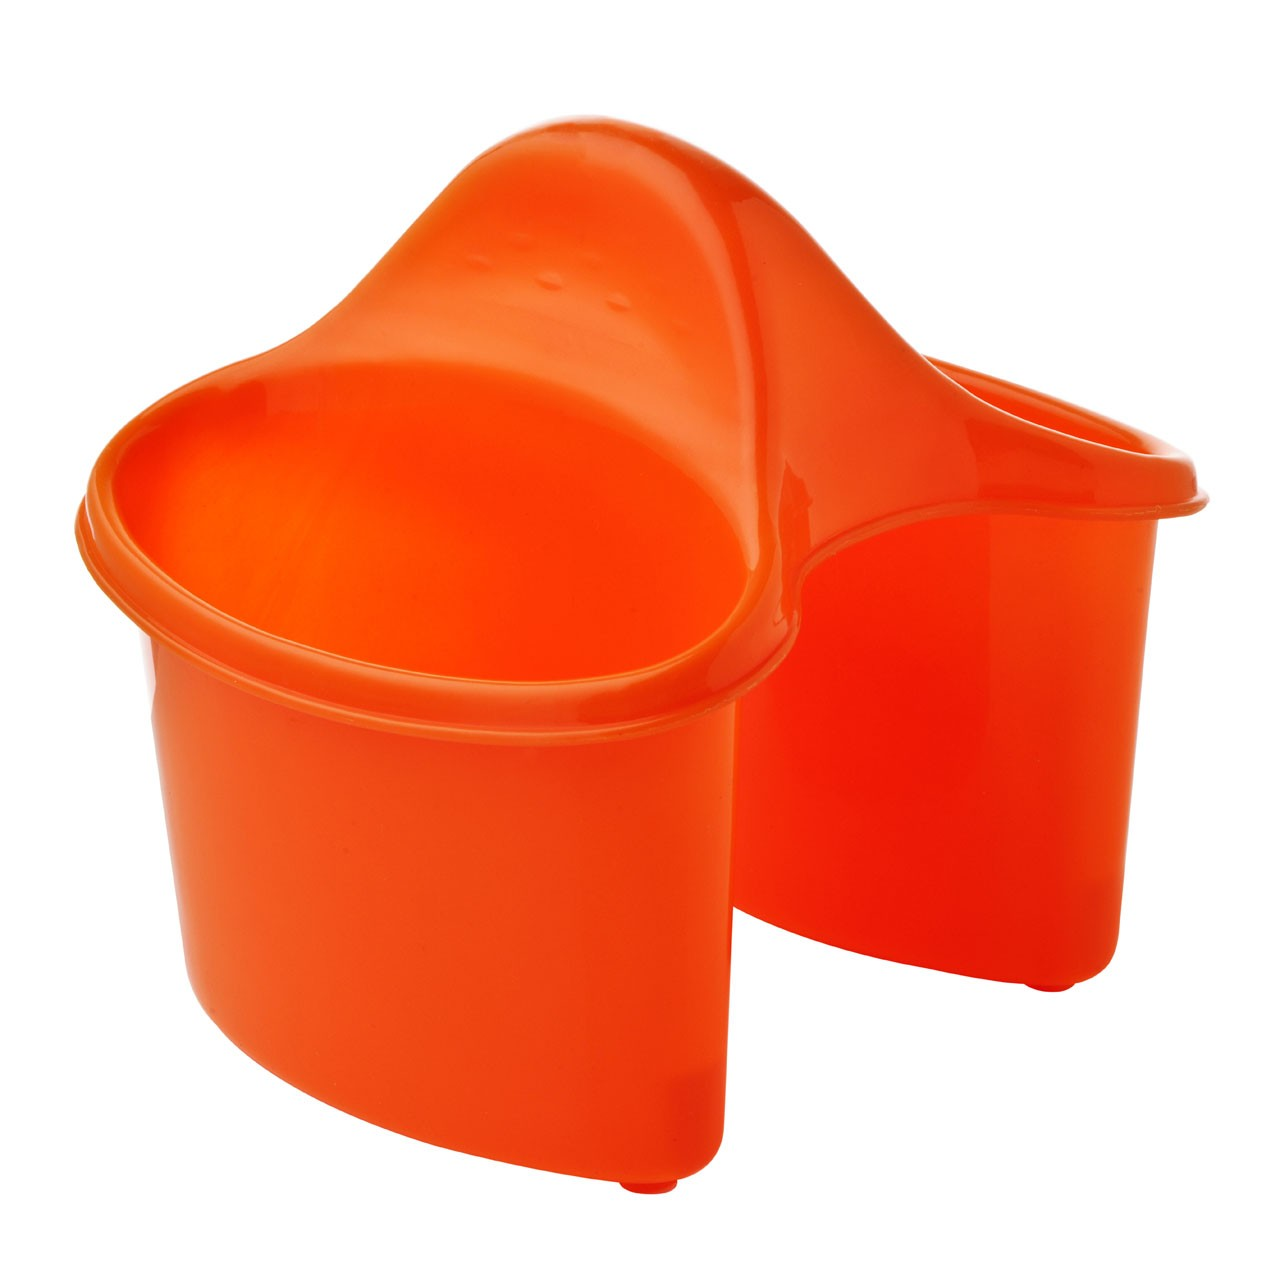 2 Compartment Caddy - Orange